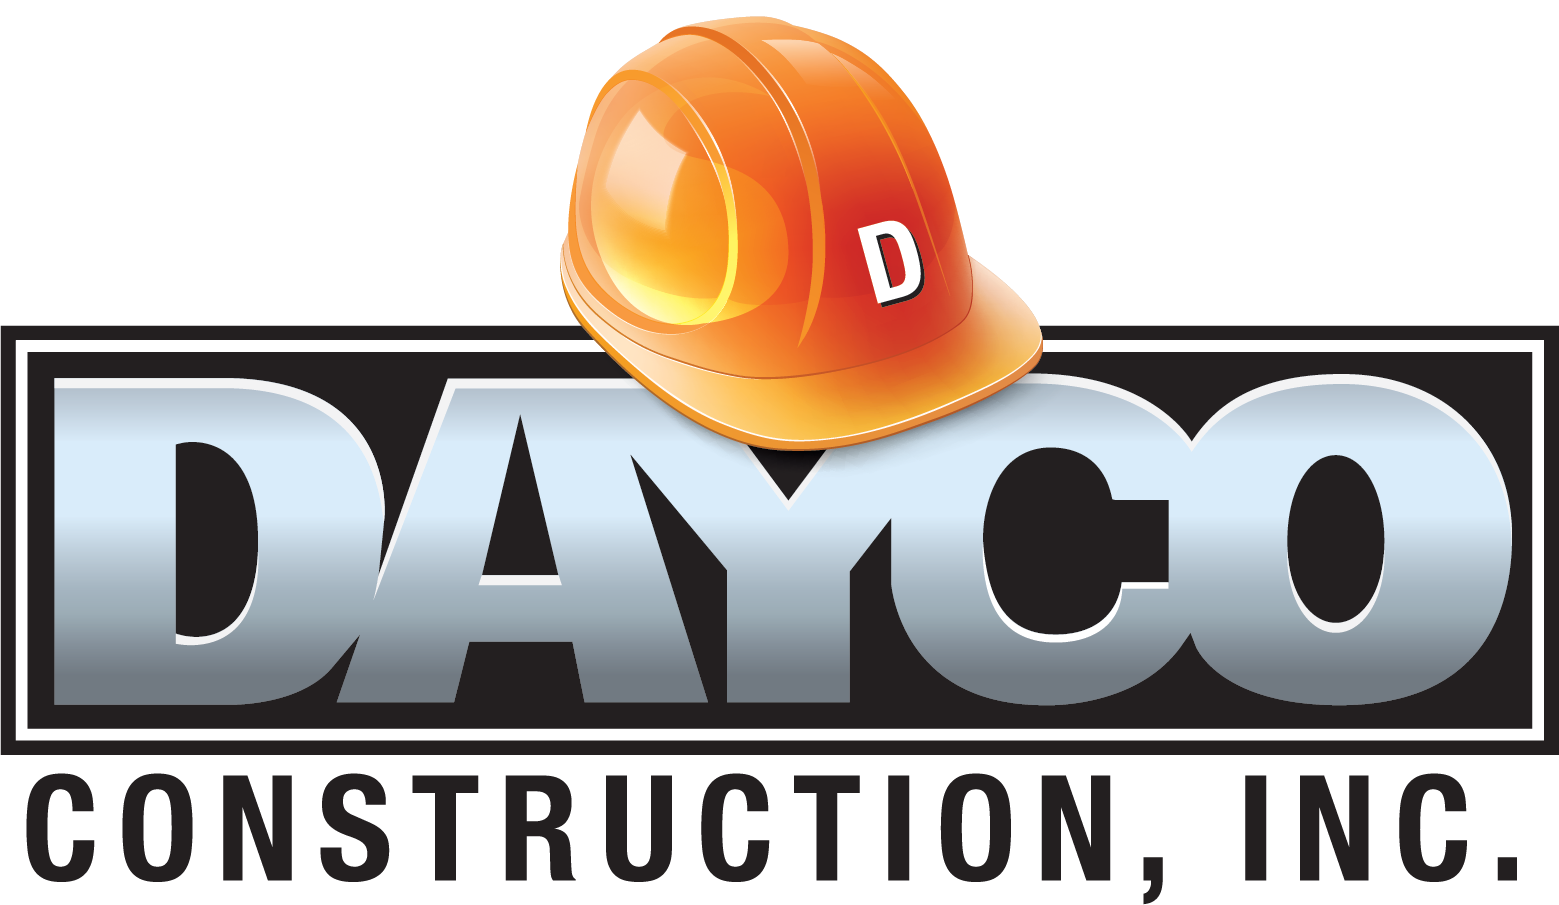 DAYCO Construction, Inc.